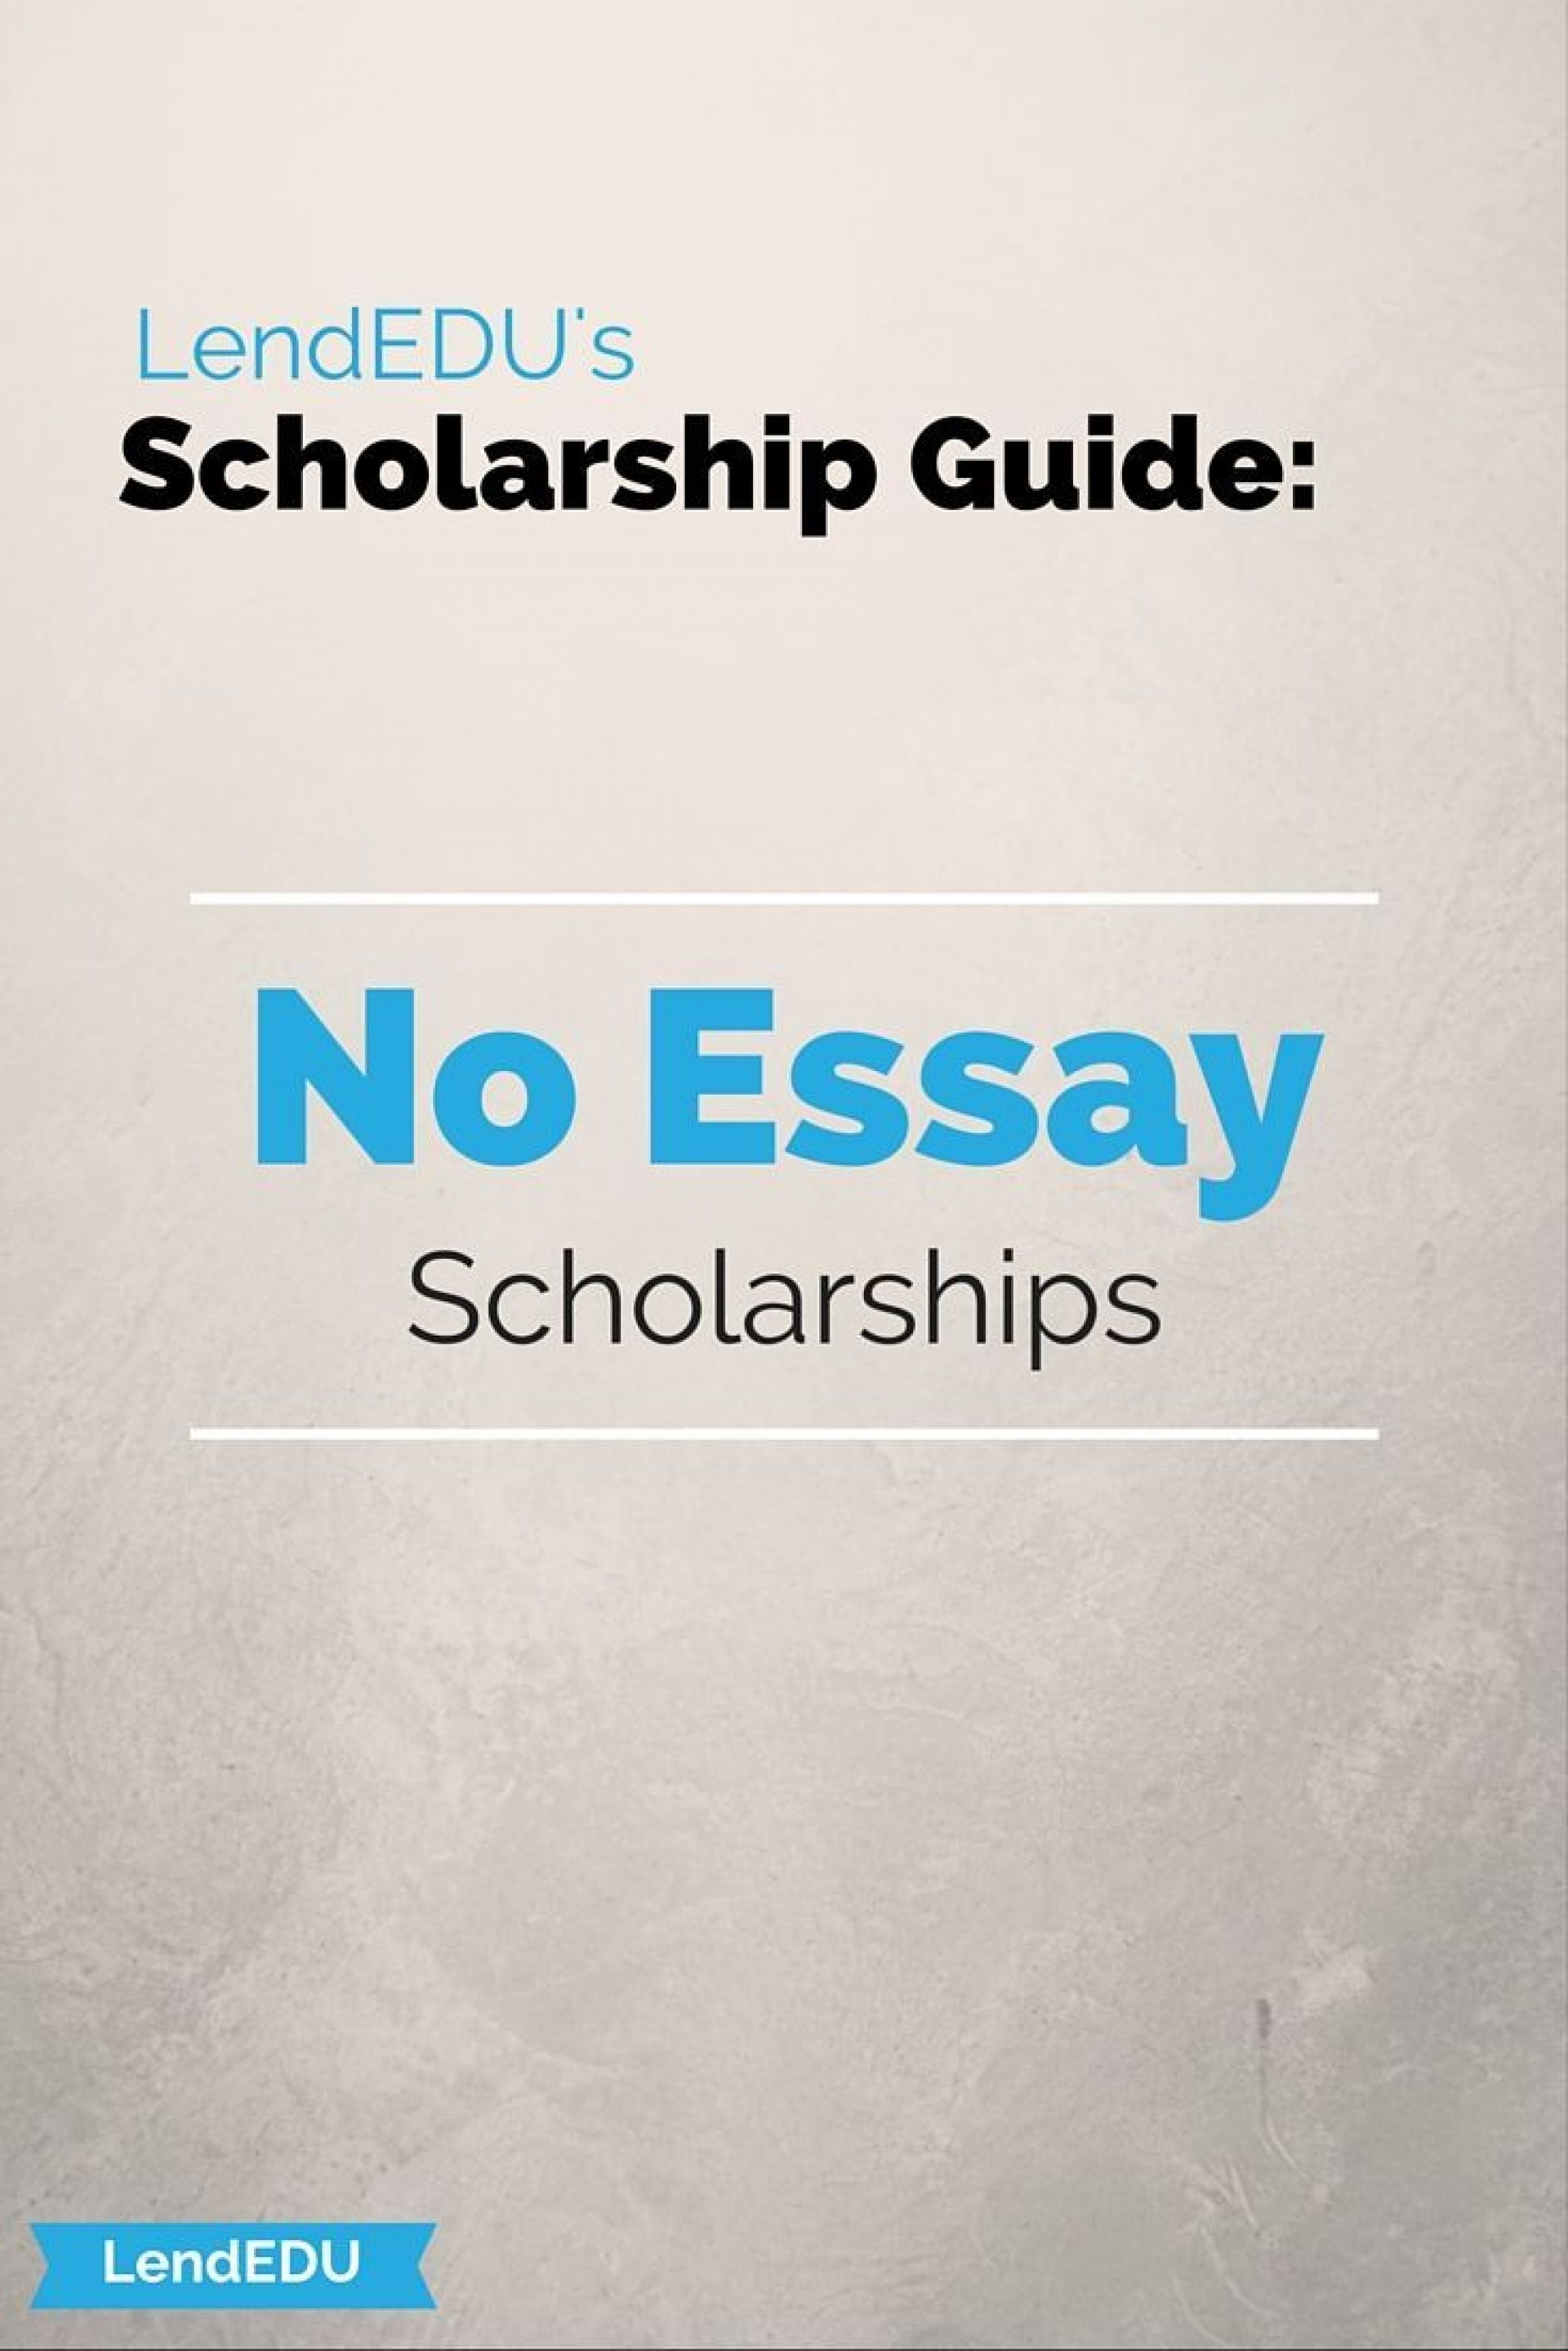 016 Essay Example No Scholarship Wondrous Scholarships For High School Seniors 2019 1920